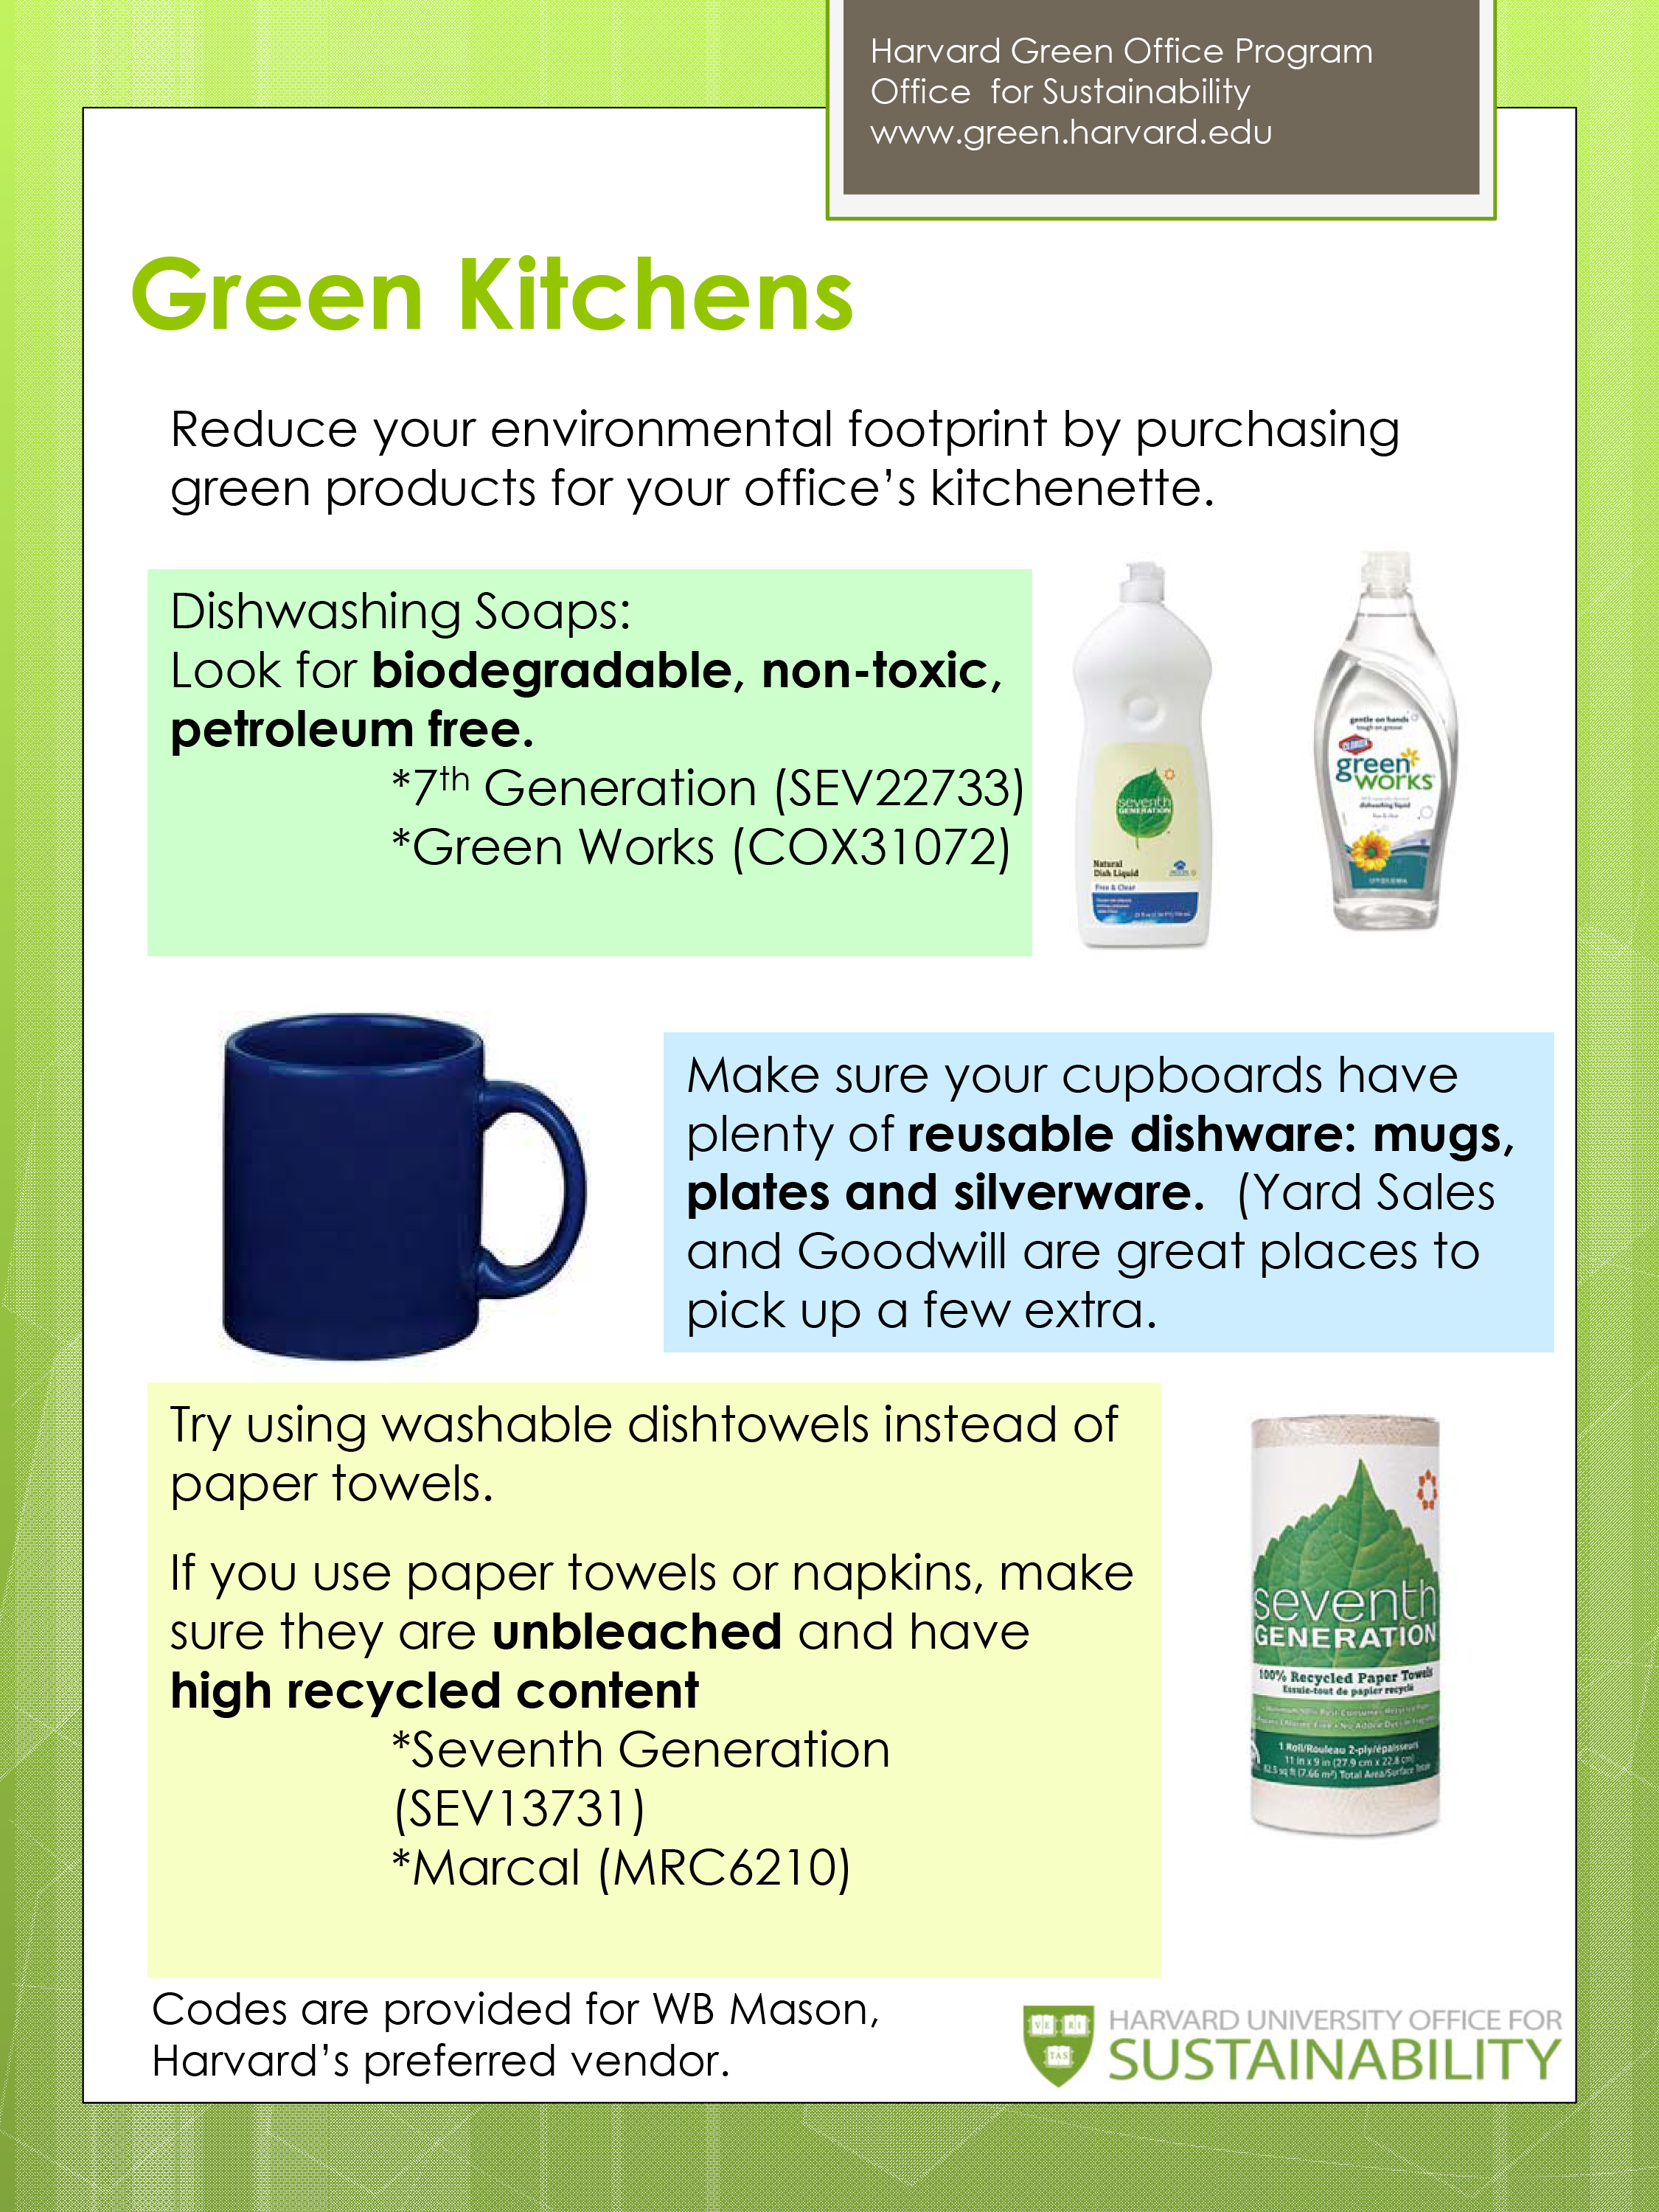 Green your office kitchen sustainability at harvard for Green building features checklist